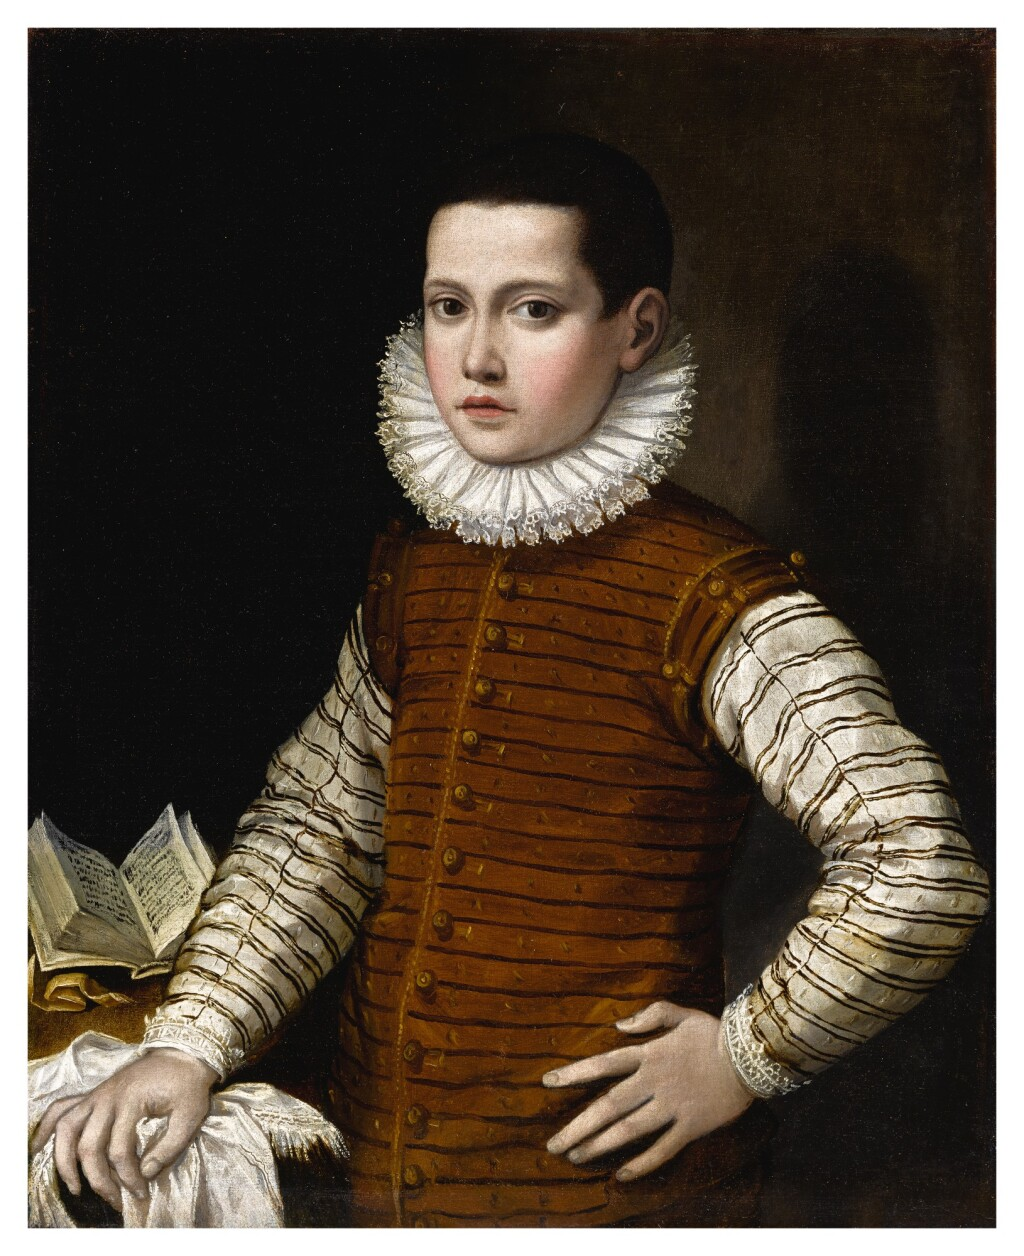 GERVASIO GATTI     PORTRAIT OF A BOY IN STRIPED DOUBLET AND WHITE RUFF, HIS LEFT ARM ON HIS HIP AND RIGHT RESTING ON A TABLE WITH AN OPEN BOOK, HALF-LENGTH